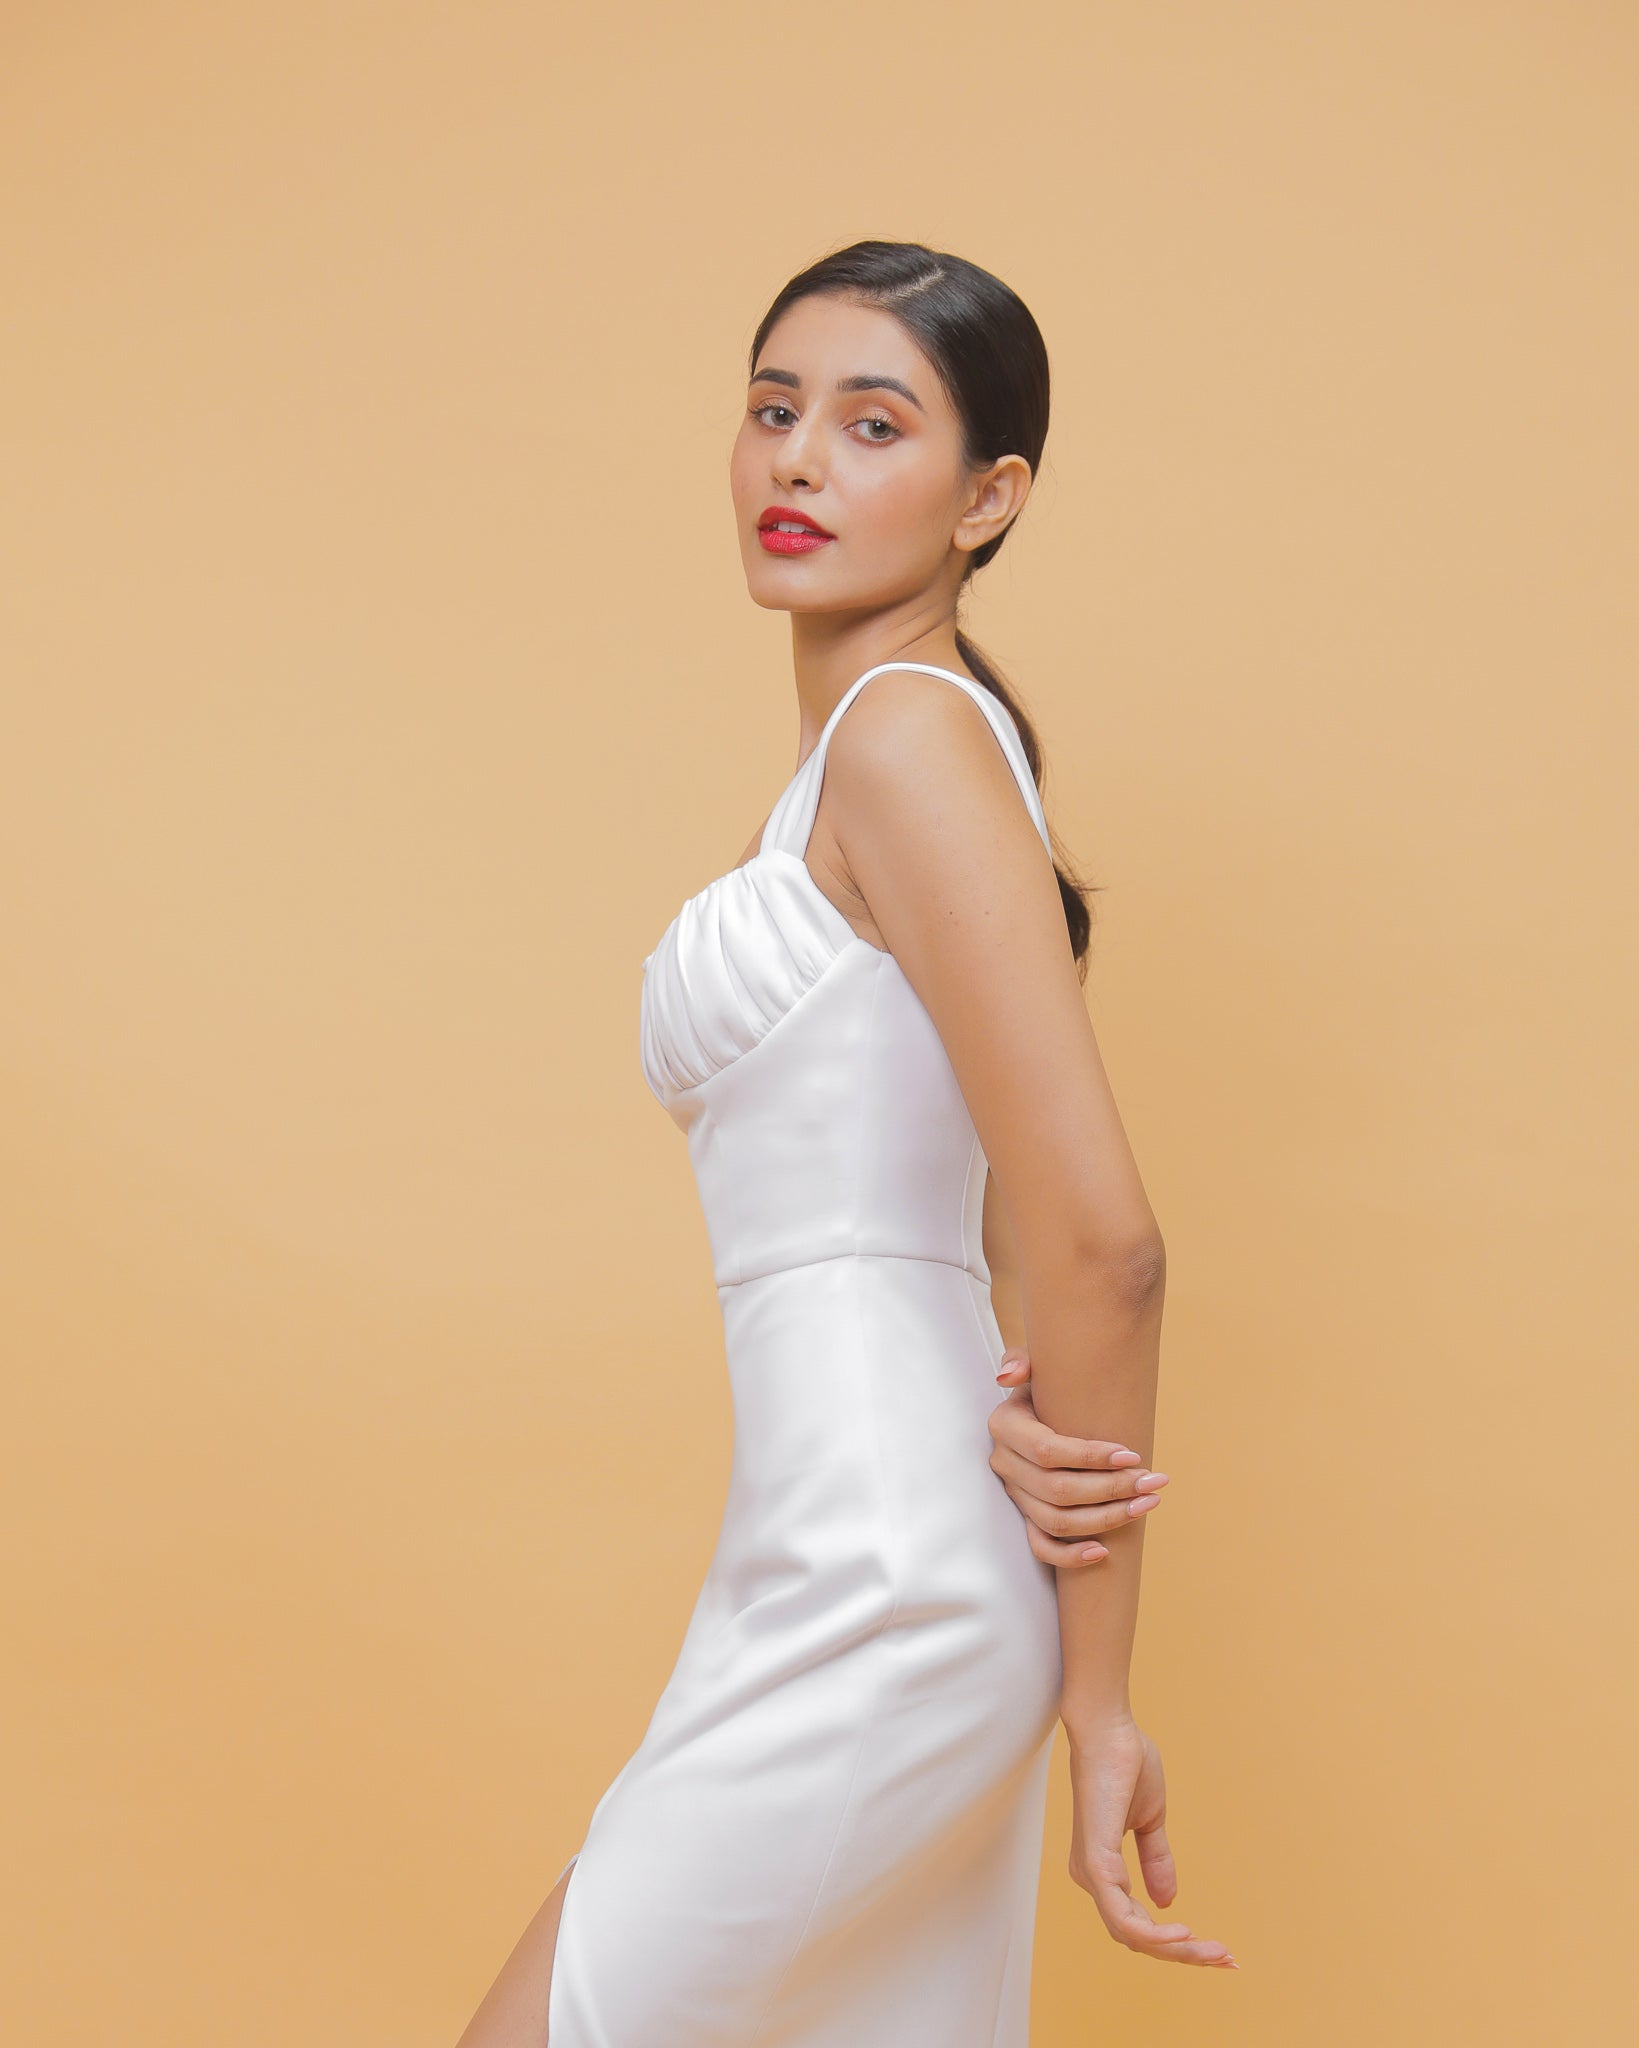 GISELLE in White: waste prevention